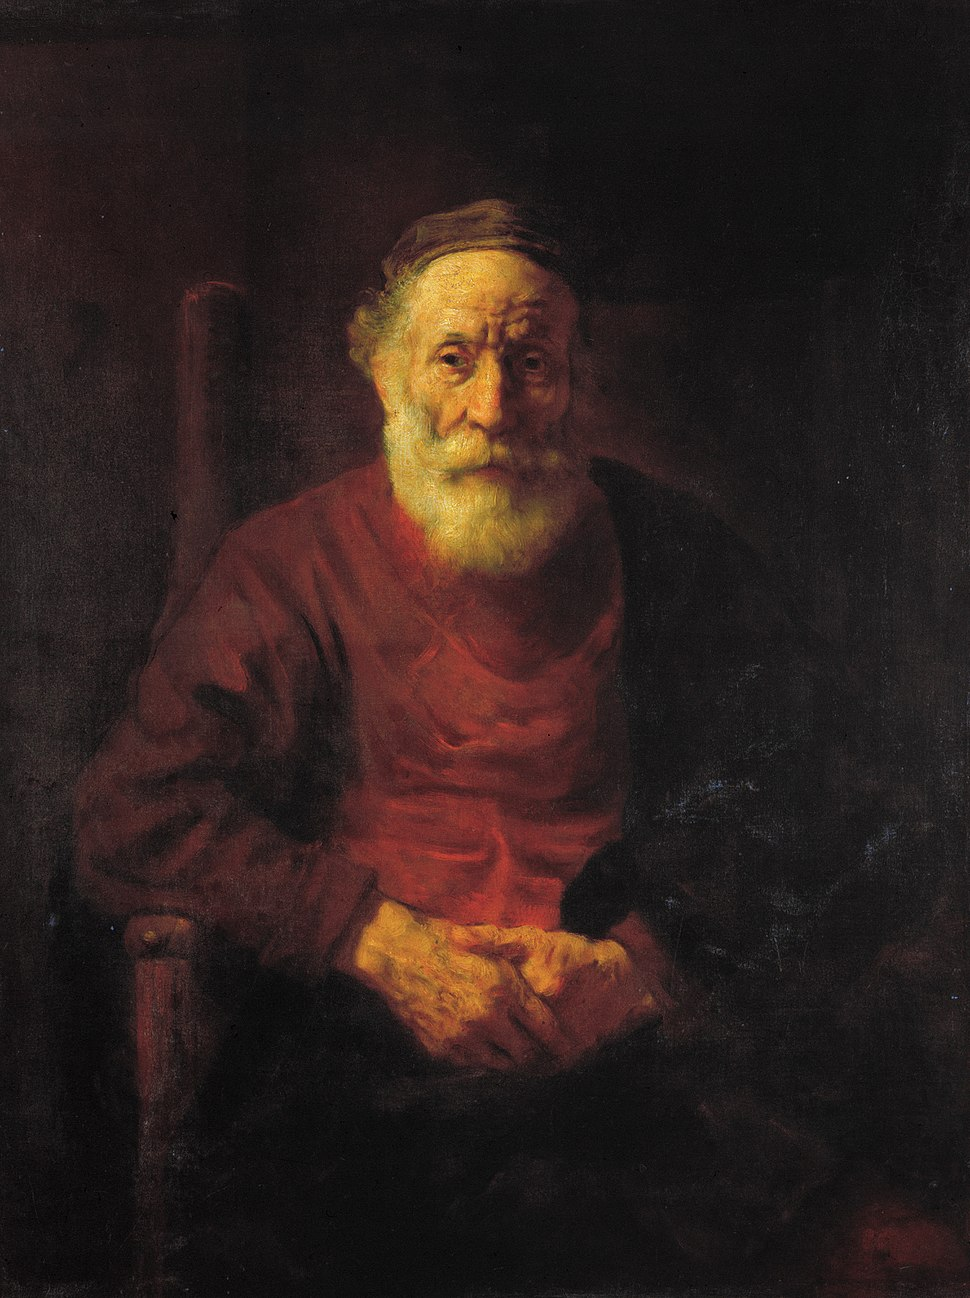 Rembrandt Harmenszoon van Rijn - An Old Man in Red